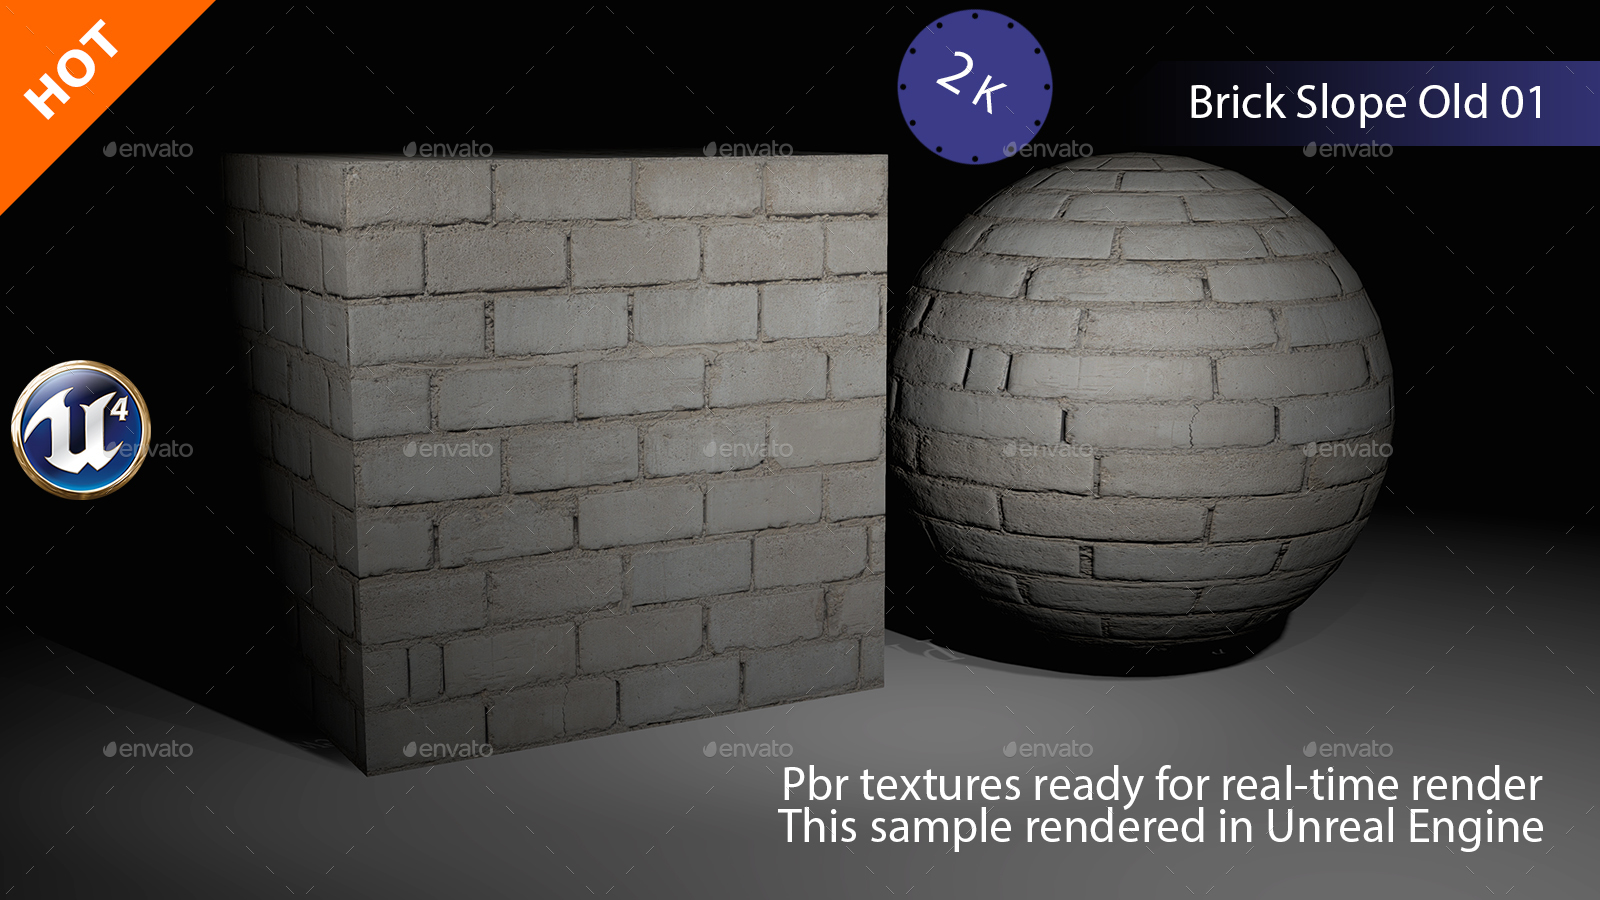 PBR Brick Slope Old 01 Texture